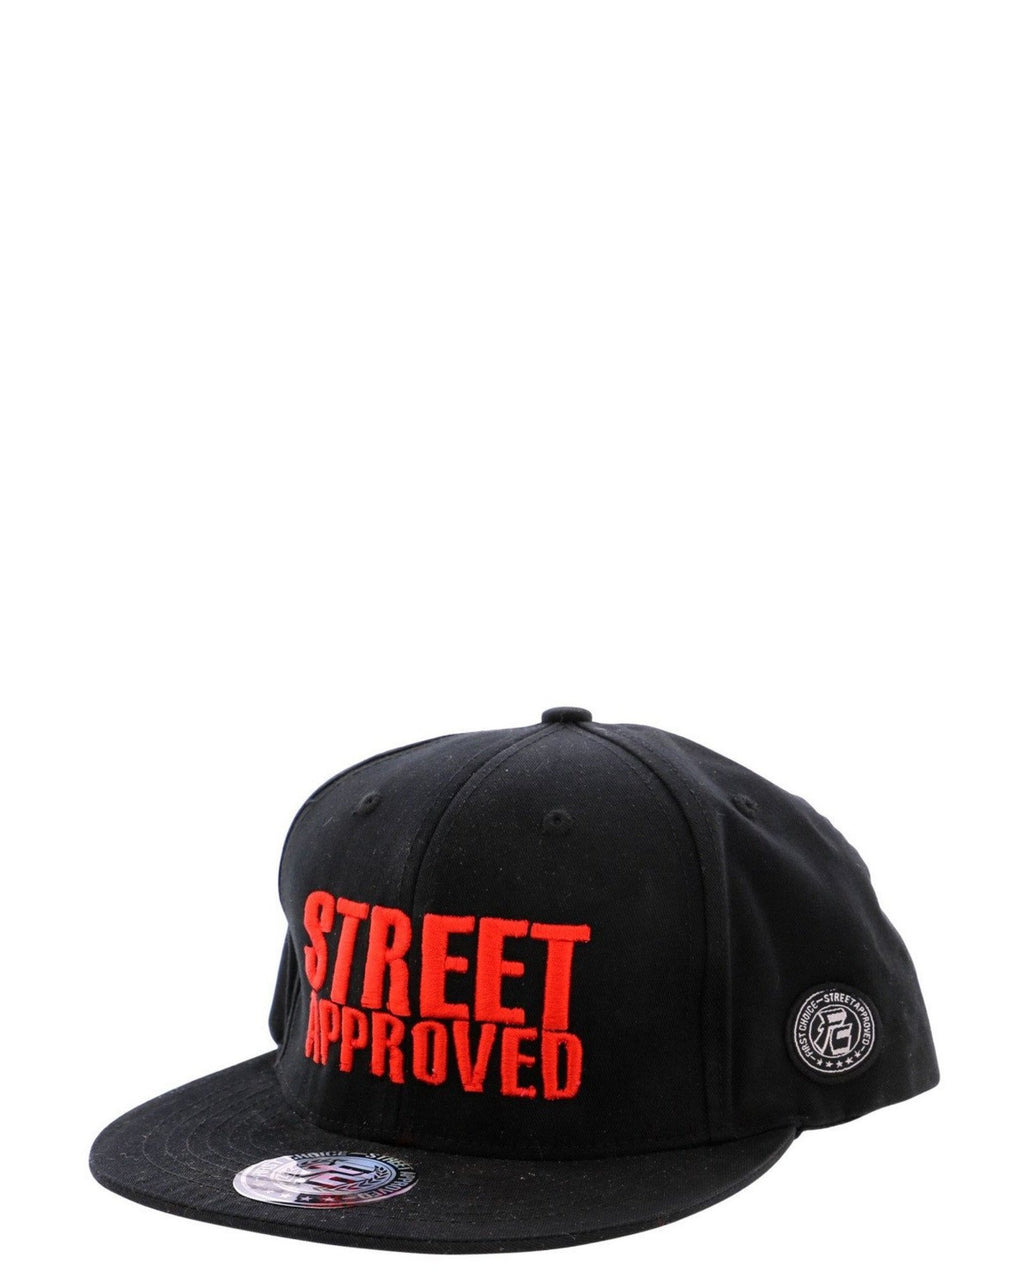 Men's Street Approved Snap Cap